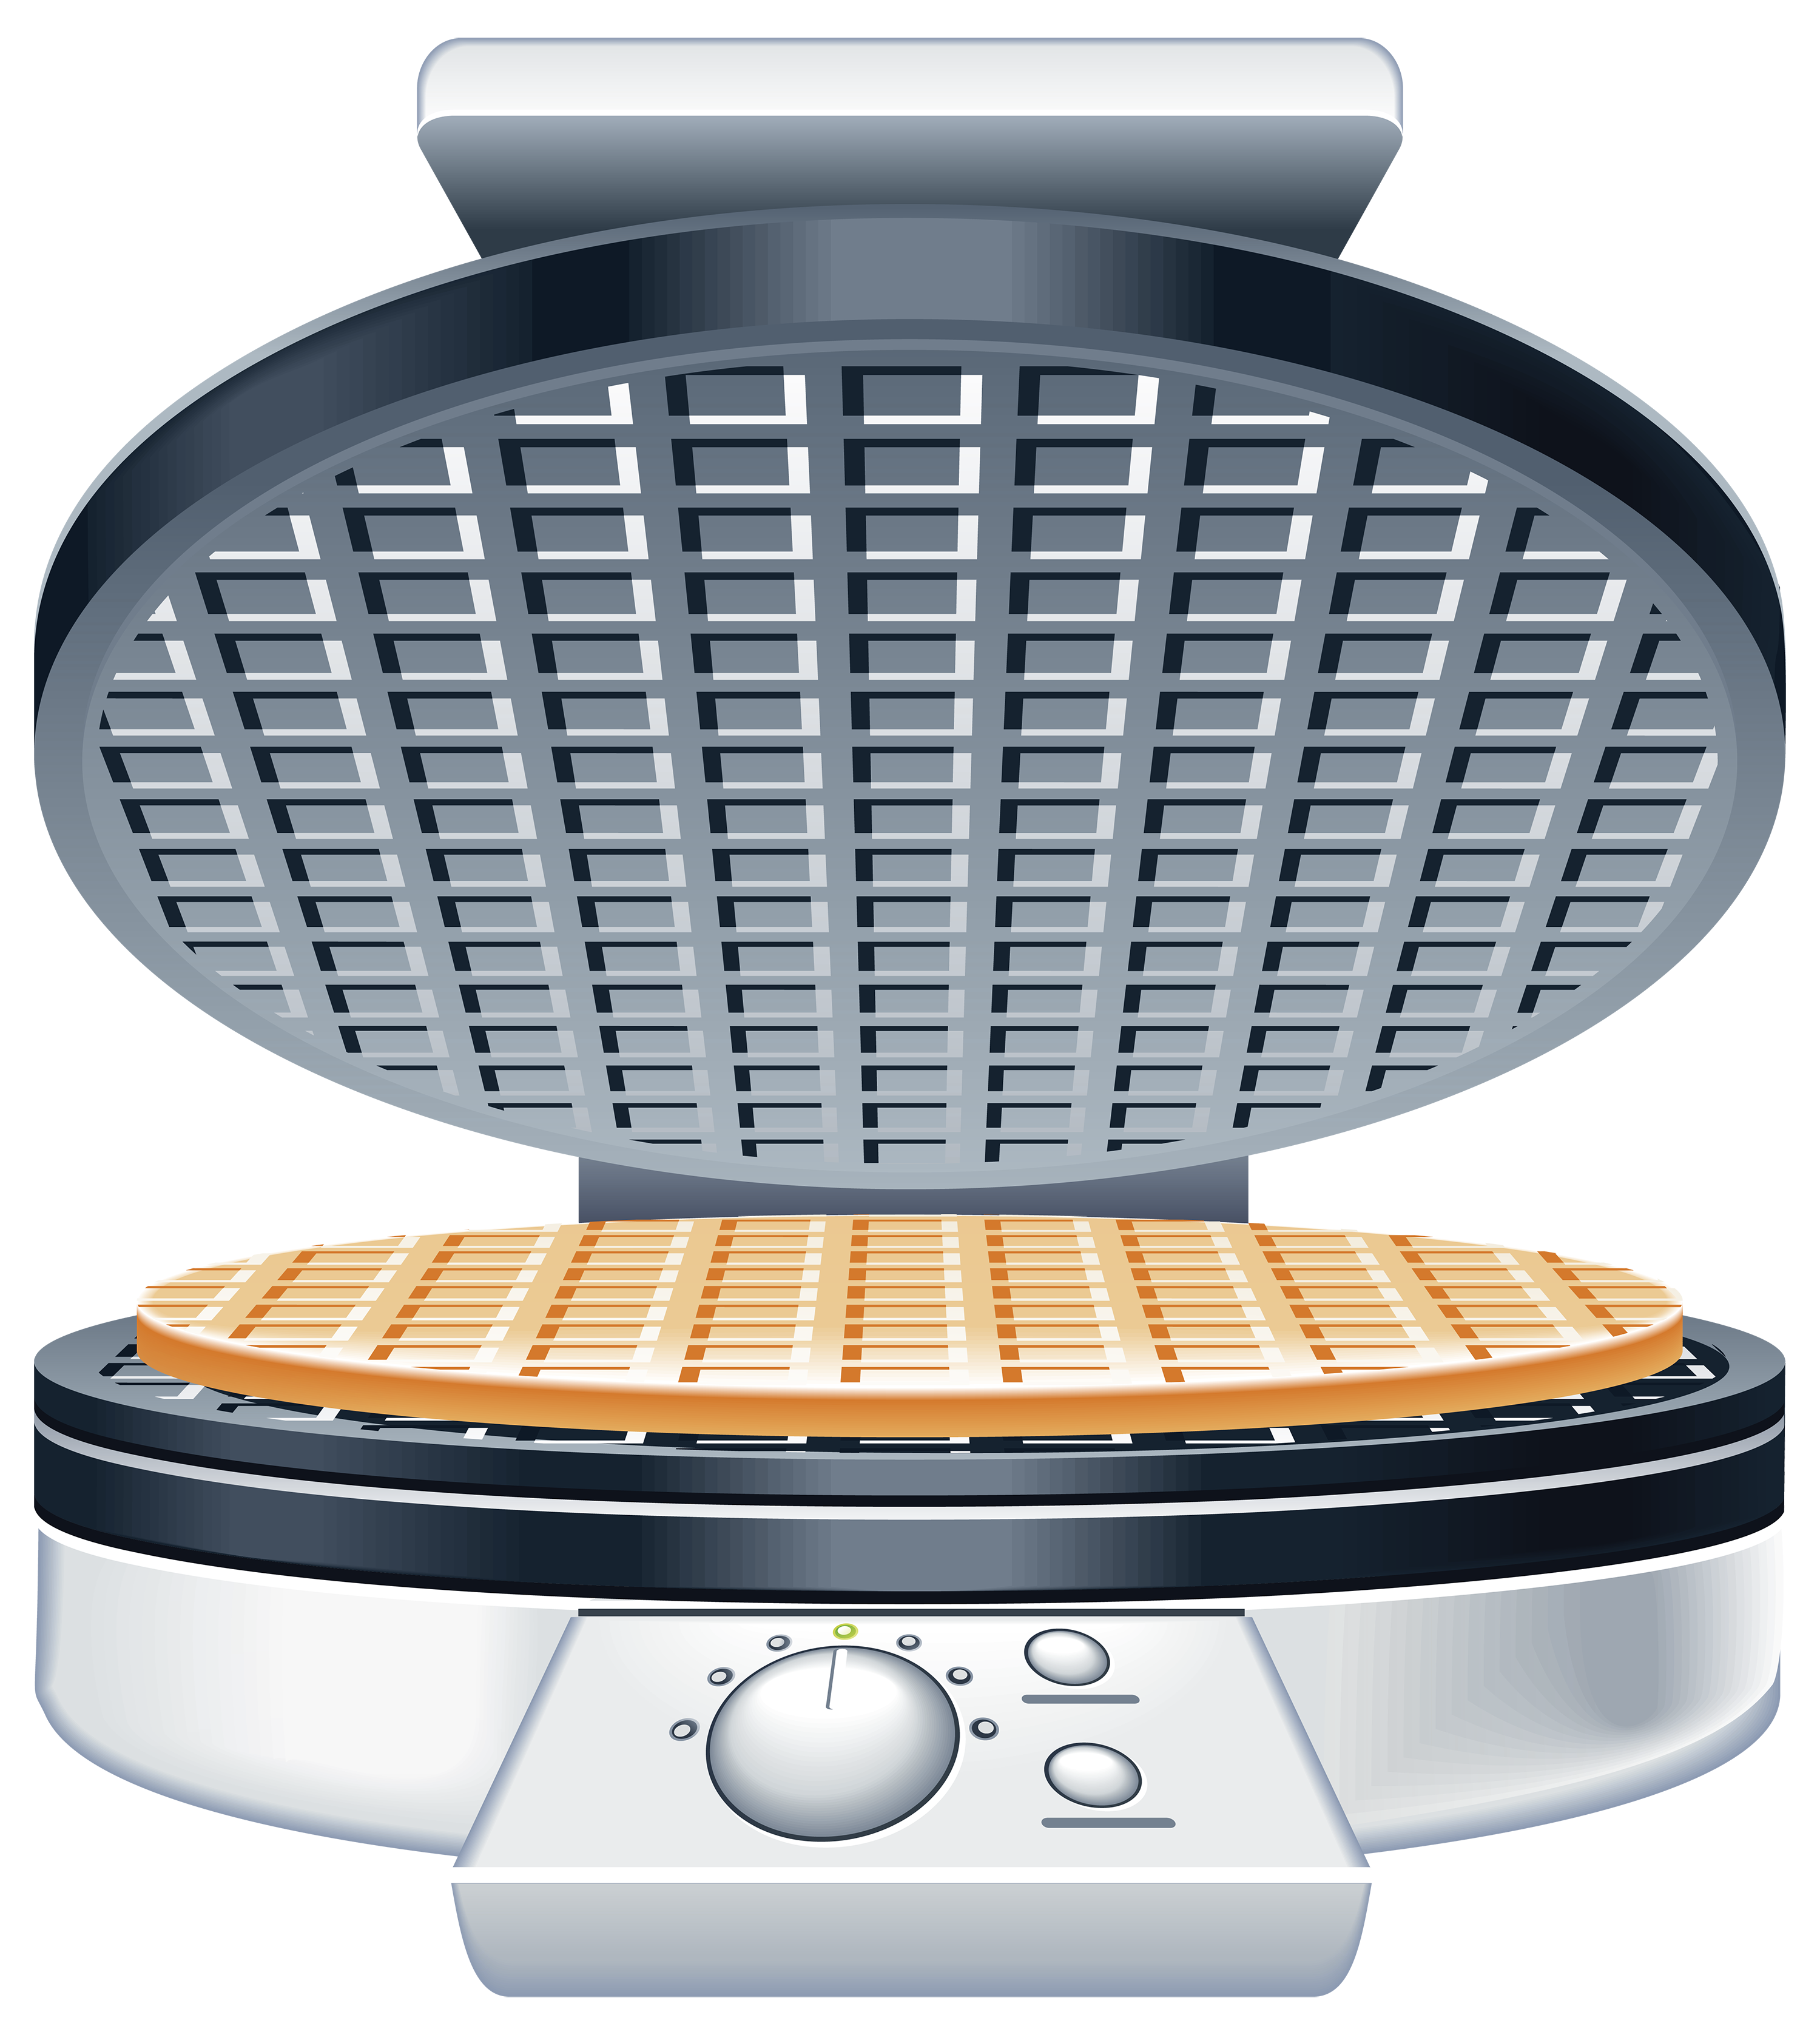 graphic royalty free Waffle maker png best. Toaster clipart cartoon.